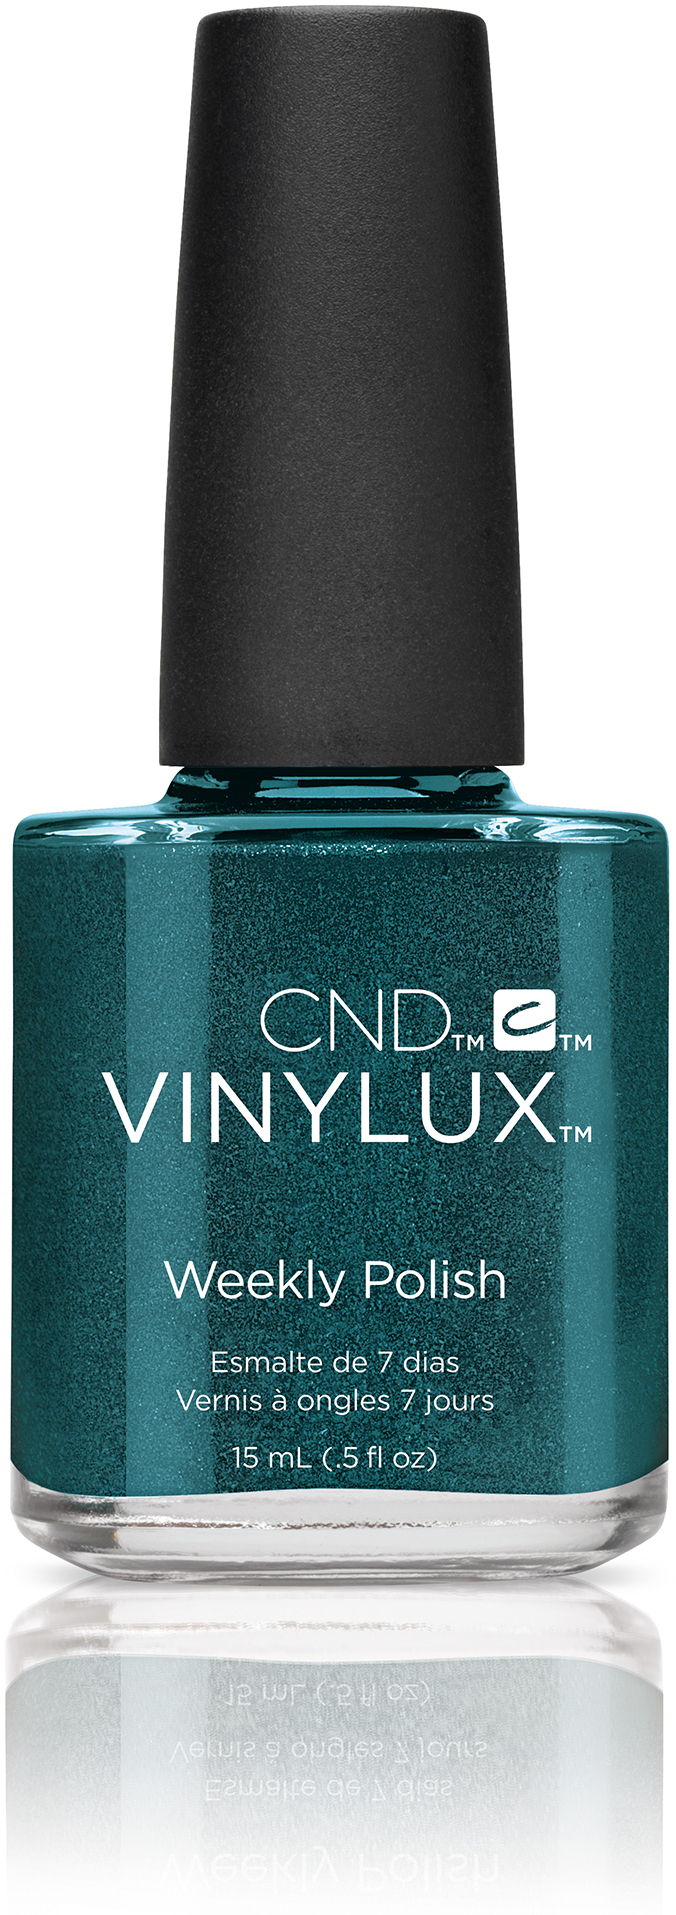 CND Vinylux Craft Culture Collection Fern Flannel